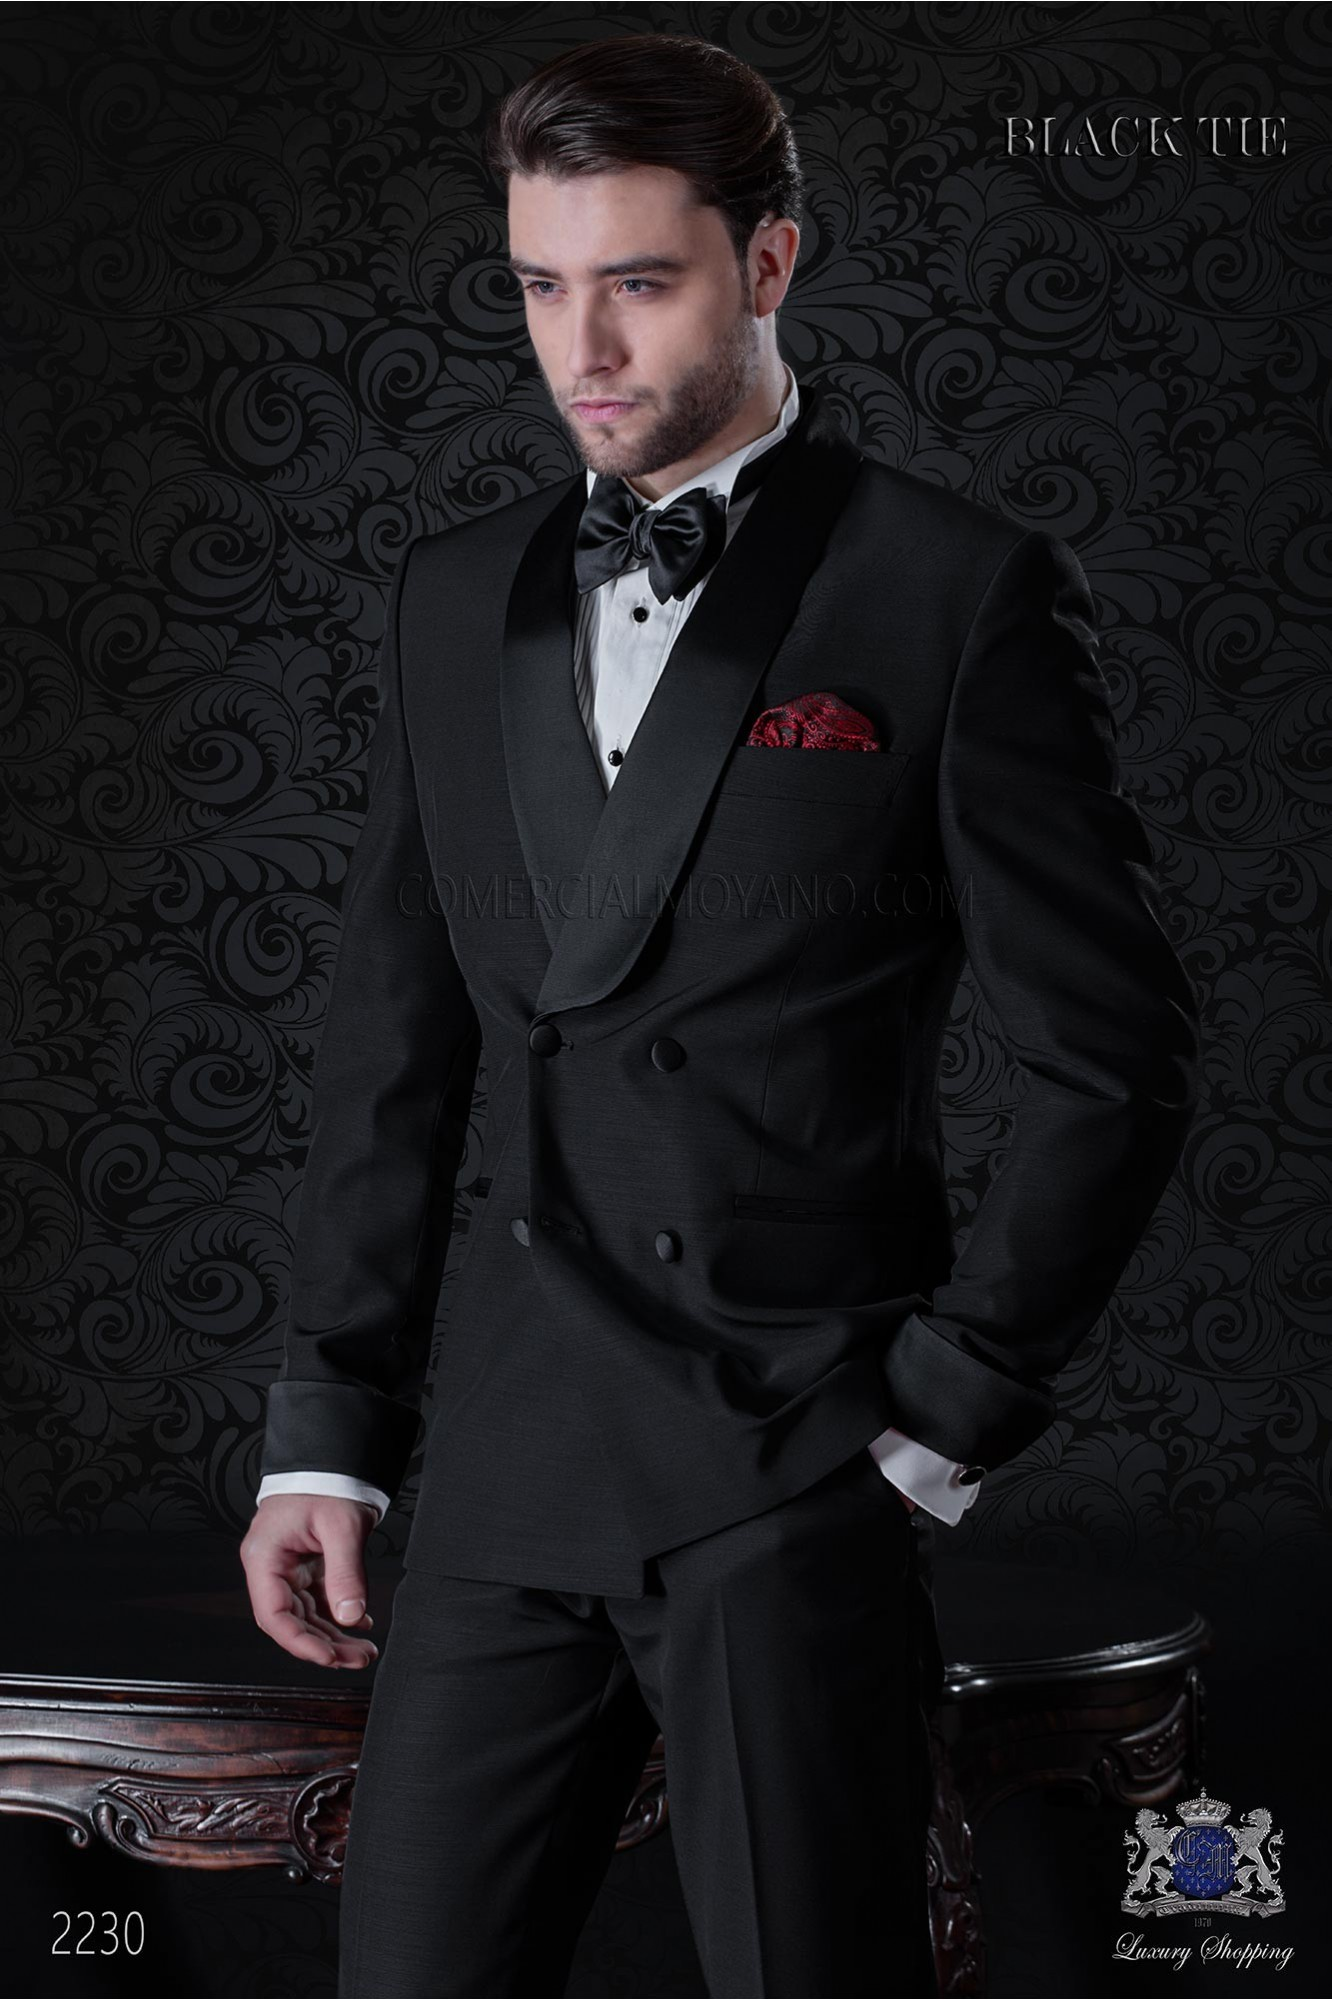 Italian double breasted black tuxedo with satin lapels. Wool mix fabric